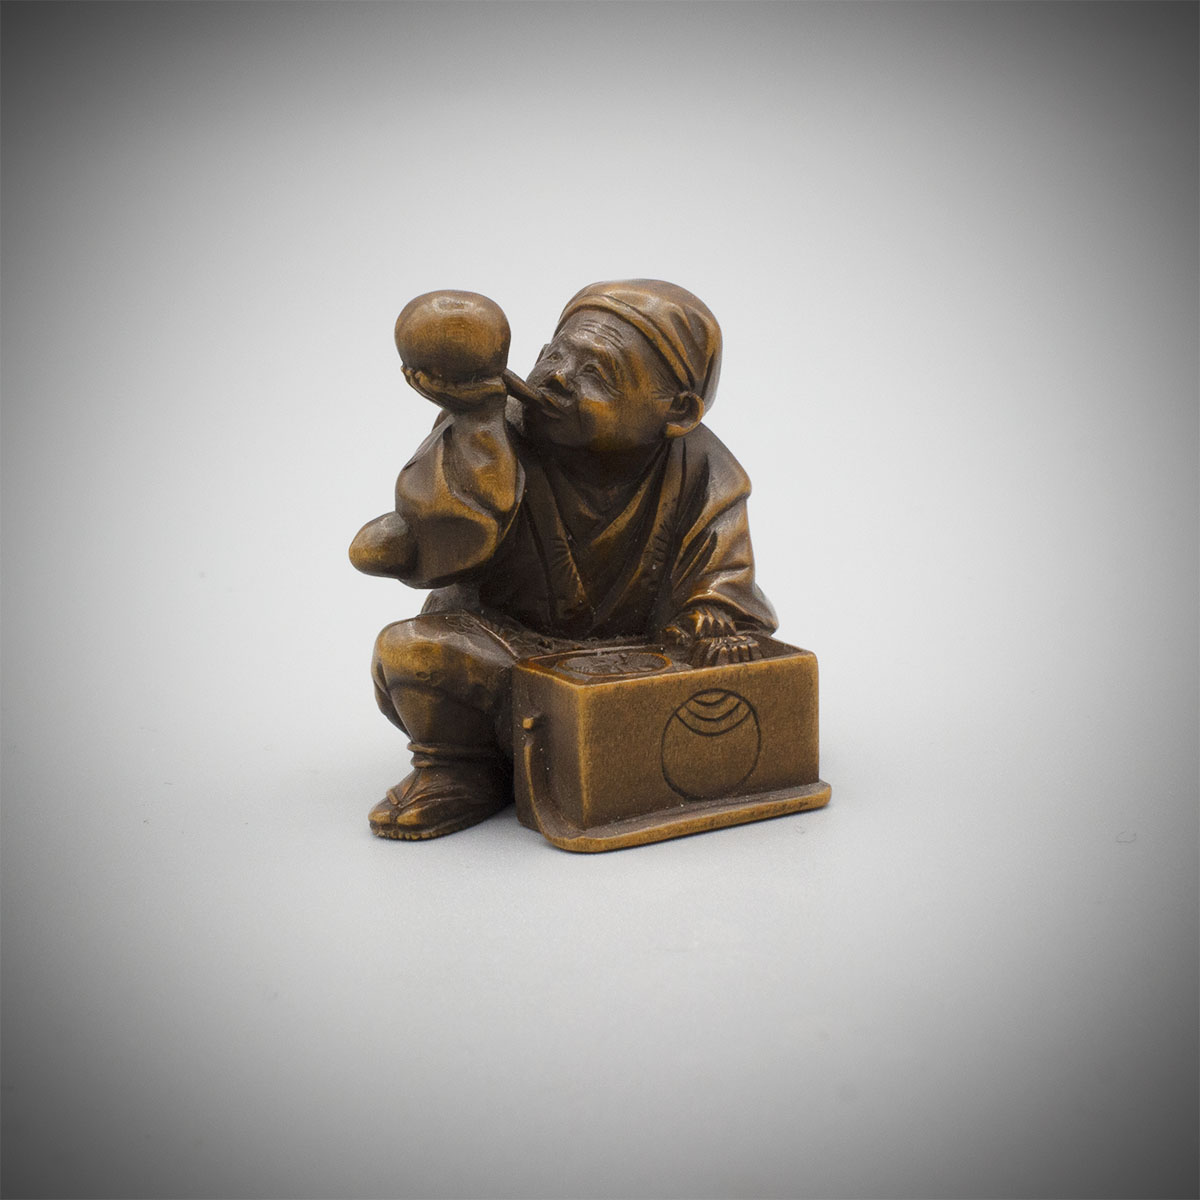 Wood Netsuke of a Street Vendor by MInkoku MR3505_v.1